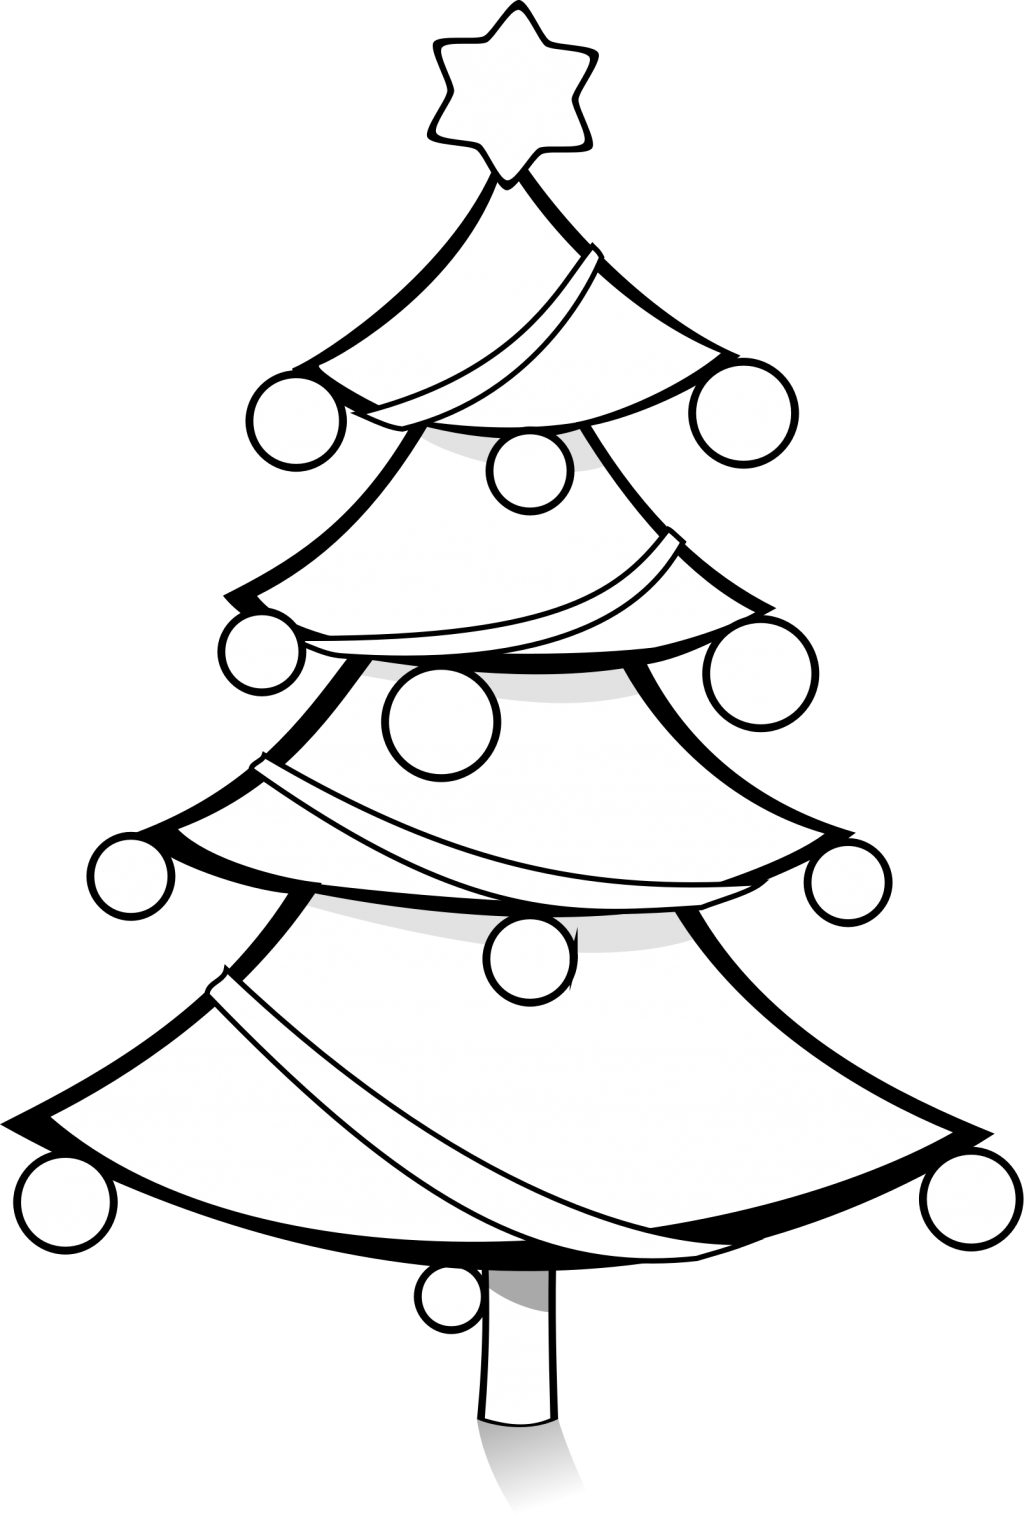 Primitive christmas clipart picture black and white stock baby nursery ~ Picturesque Black And White Christmas Tree Clipart ... picture black and white stock